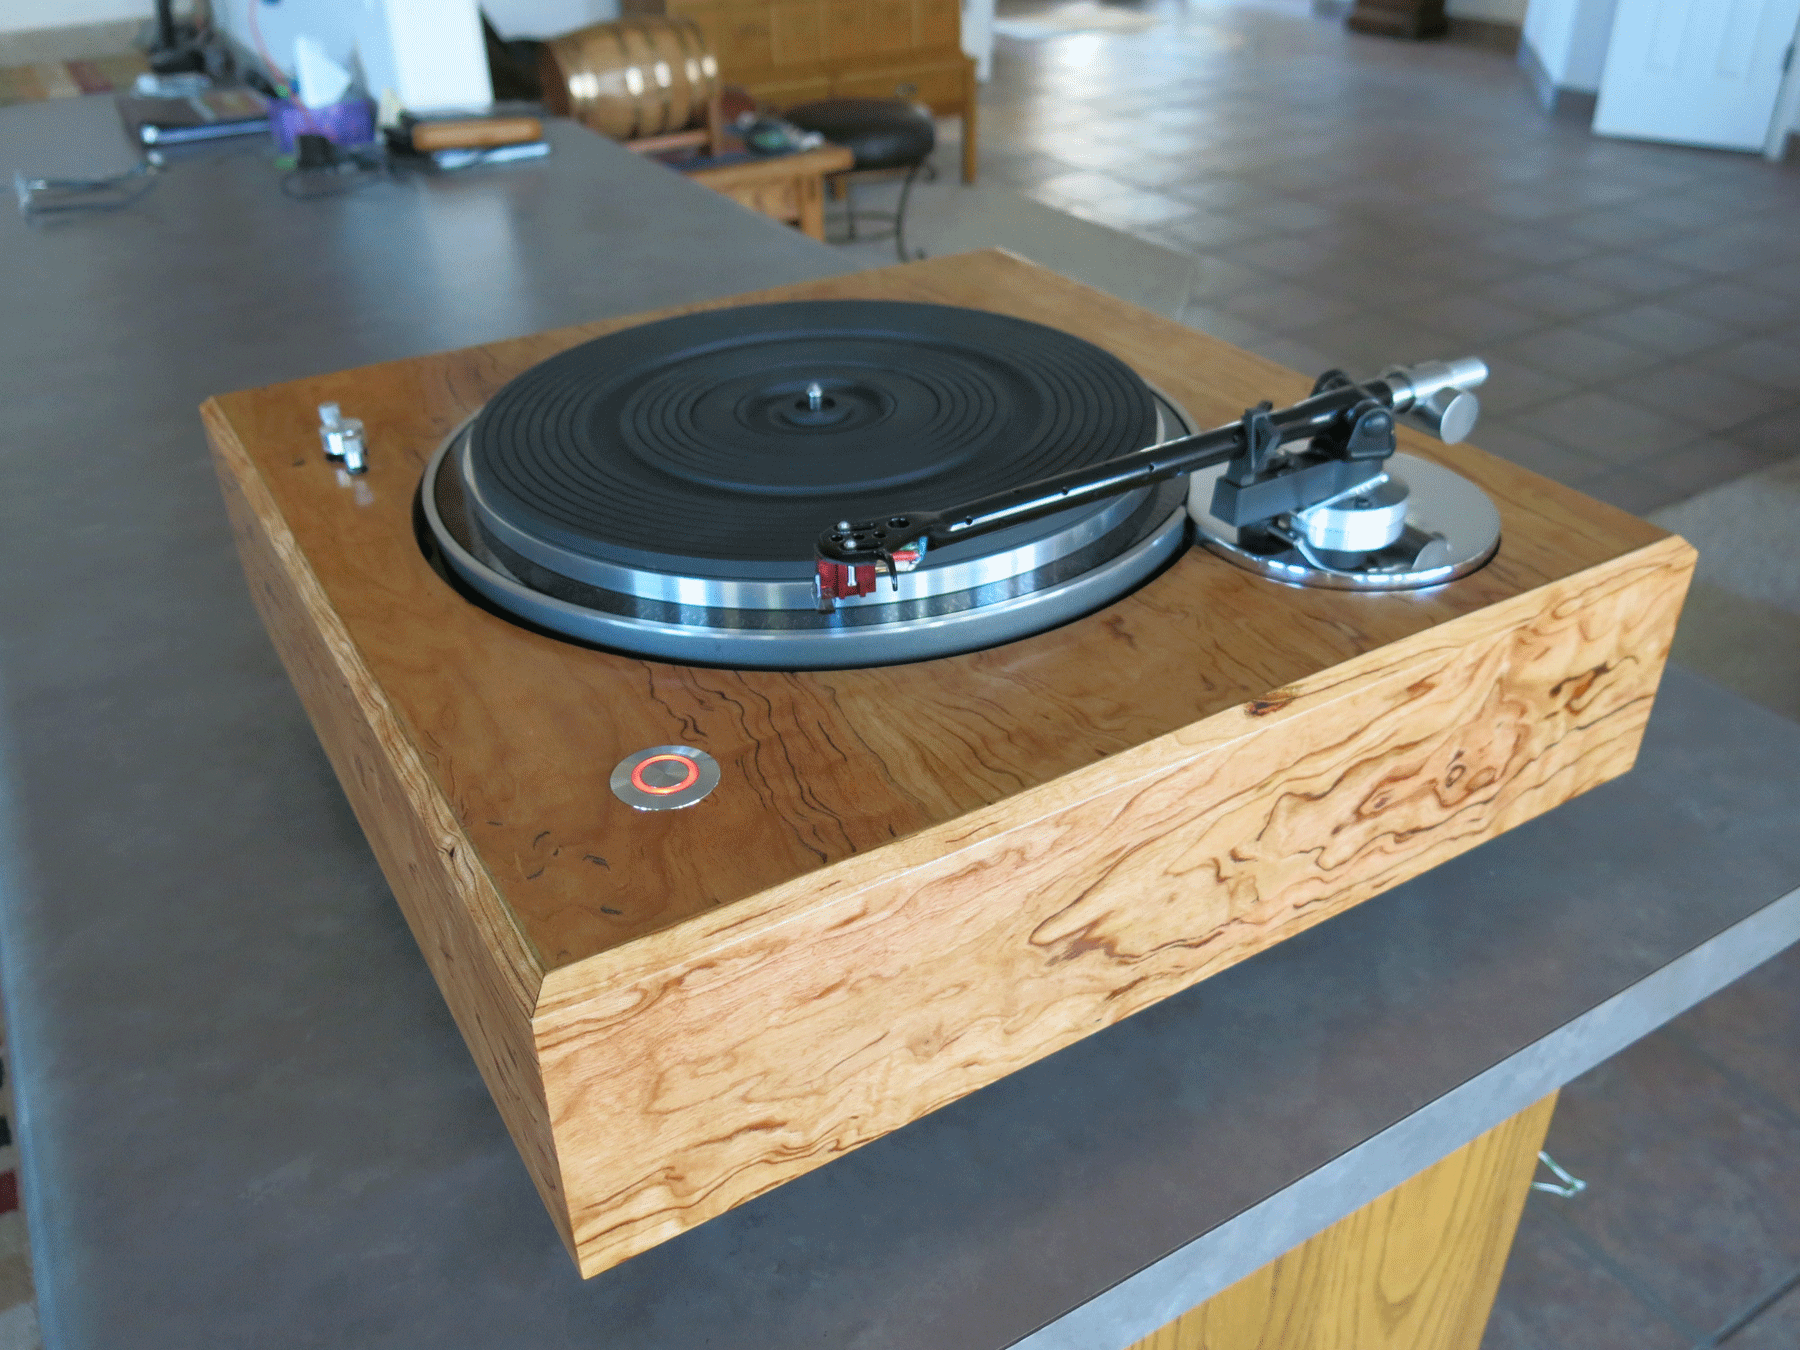 ../../images/woodwork/turntable/IMG_1309.png